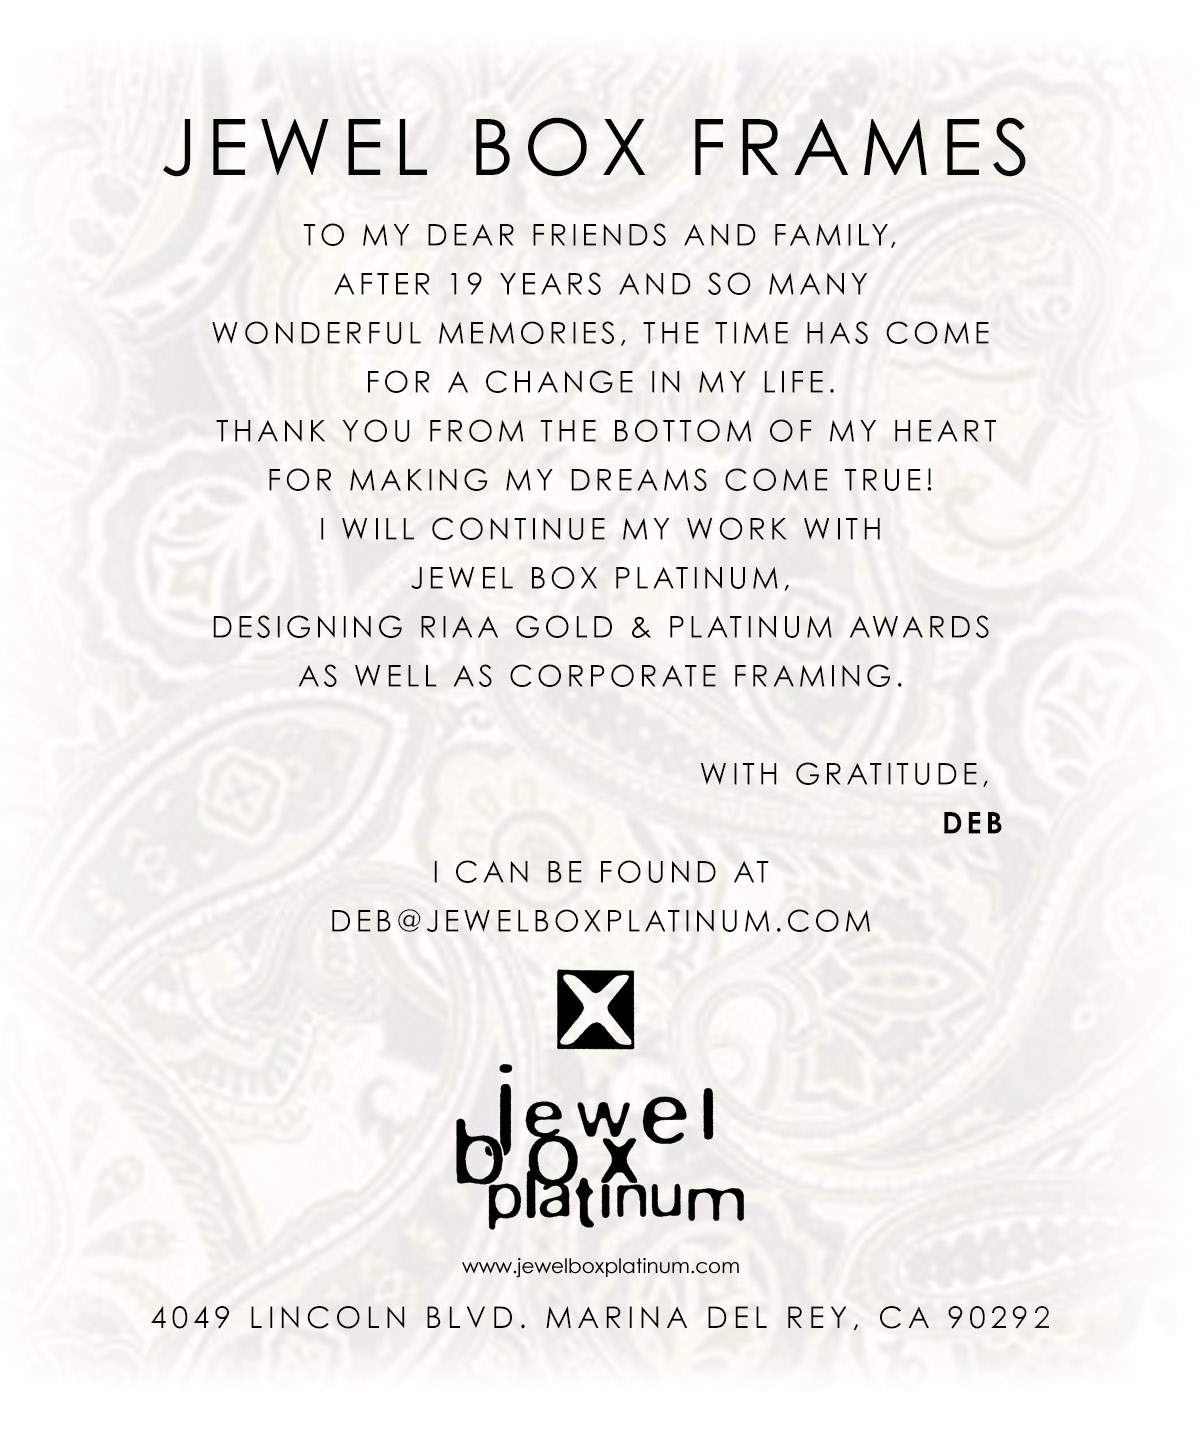 Jewel Box Frames